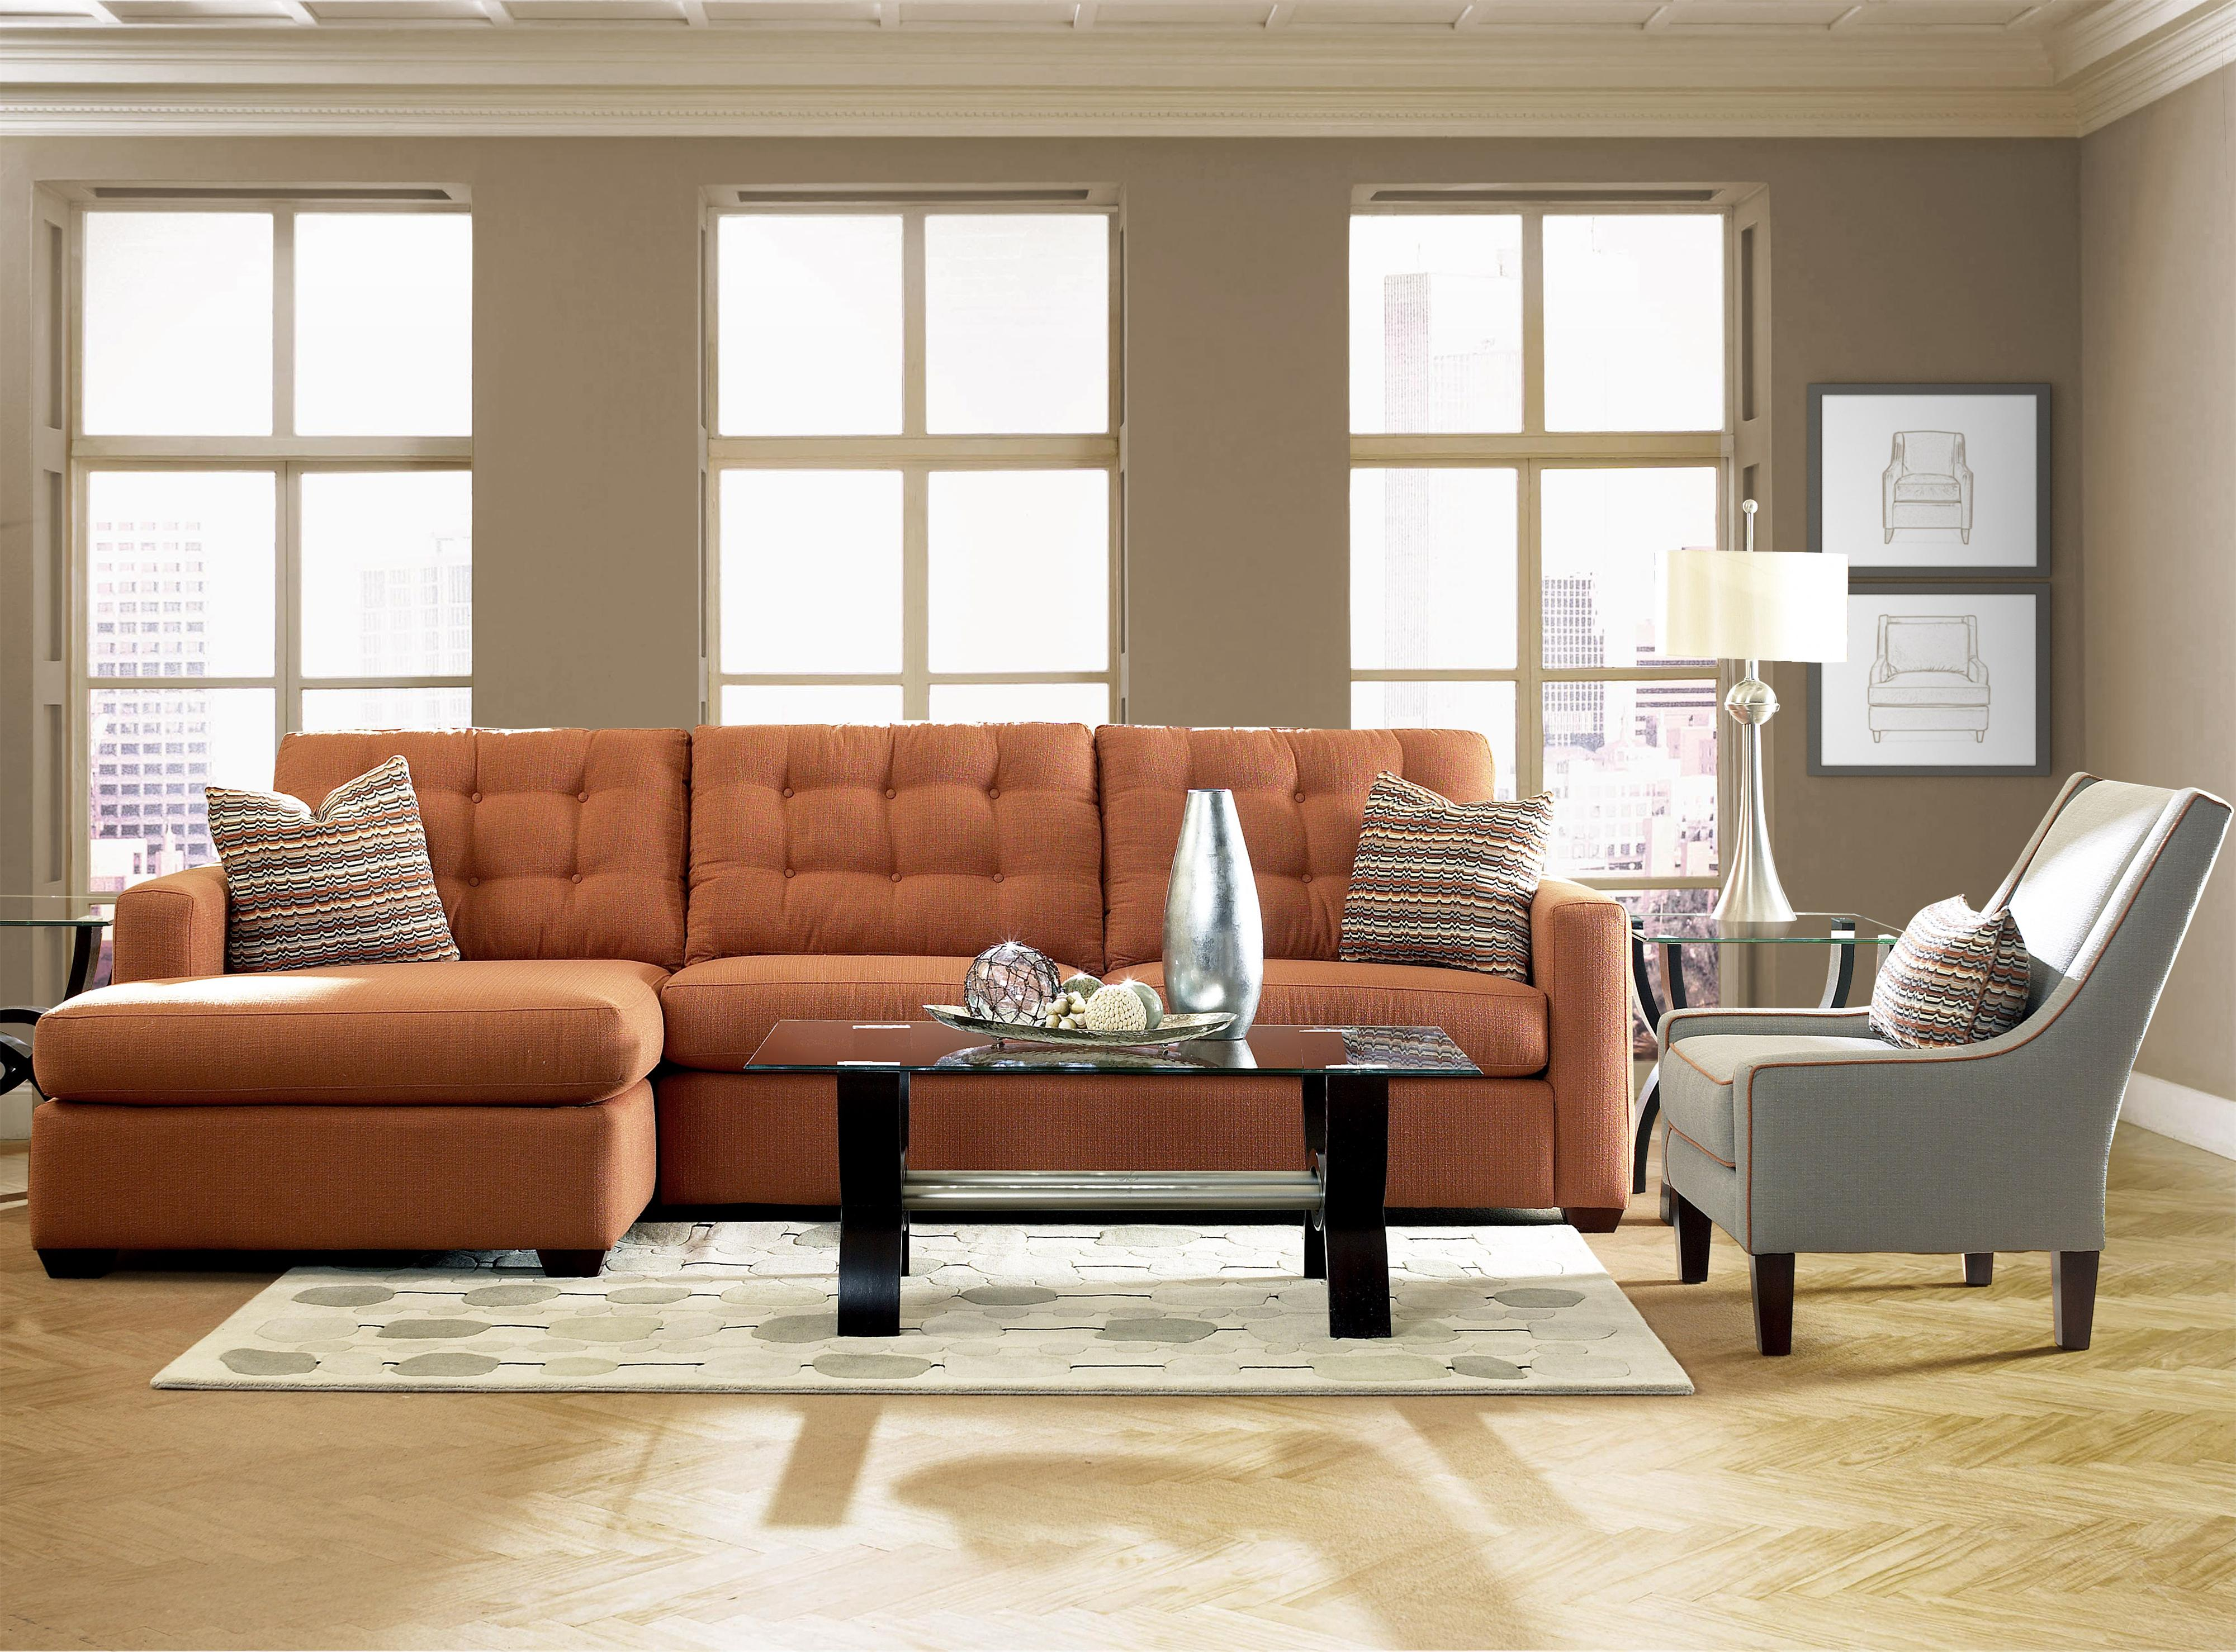 Sectional Sofas Living Room Klaussner Lido Contemporary Sectional Sofa With Left Facing Chaise